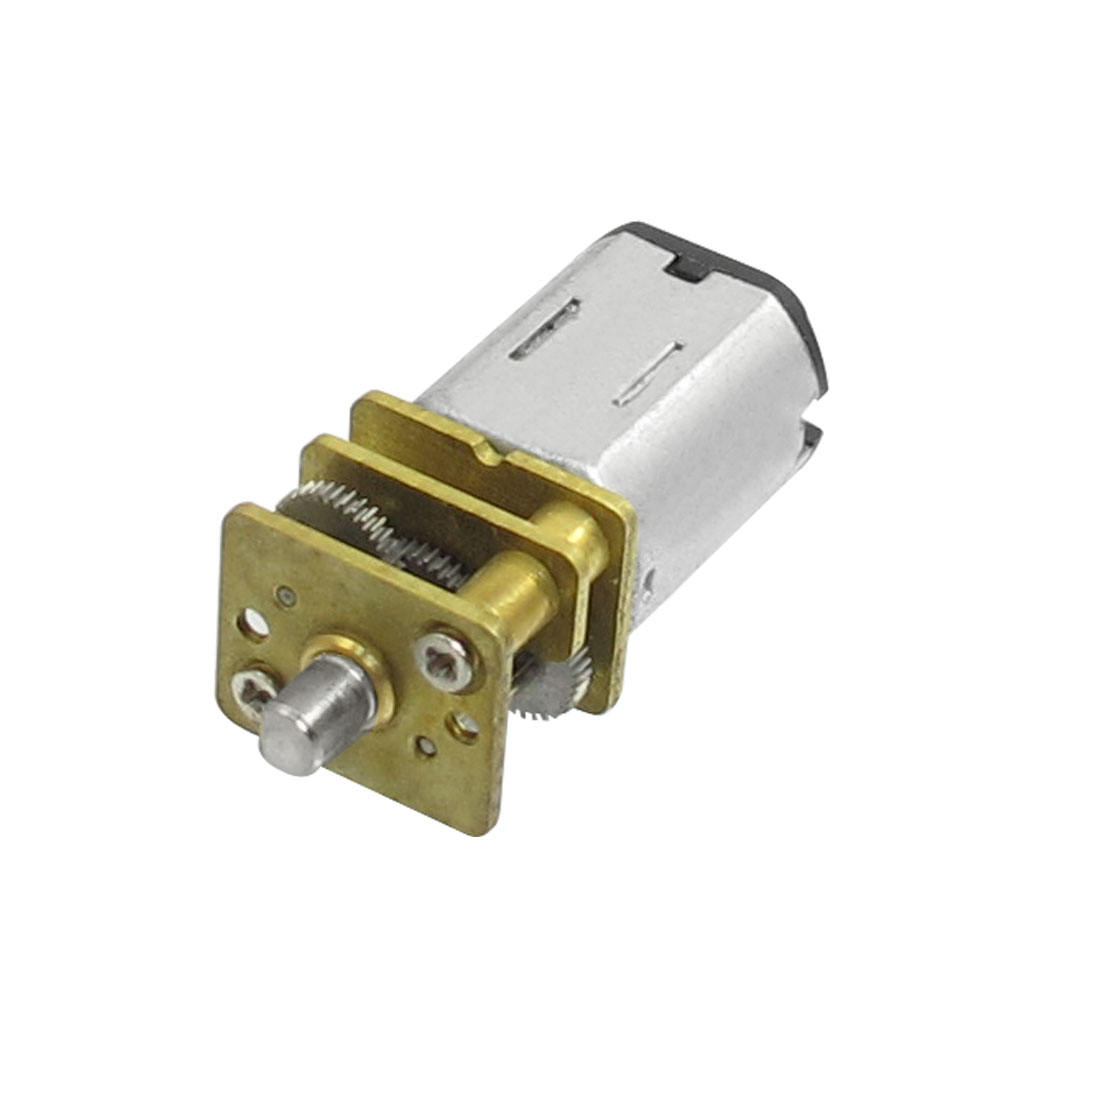 6VDC 40RPM Connector Electric Magnetic Micro Geared Motor